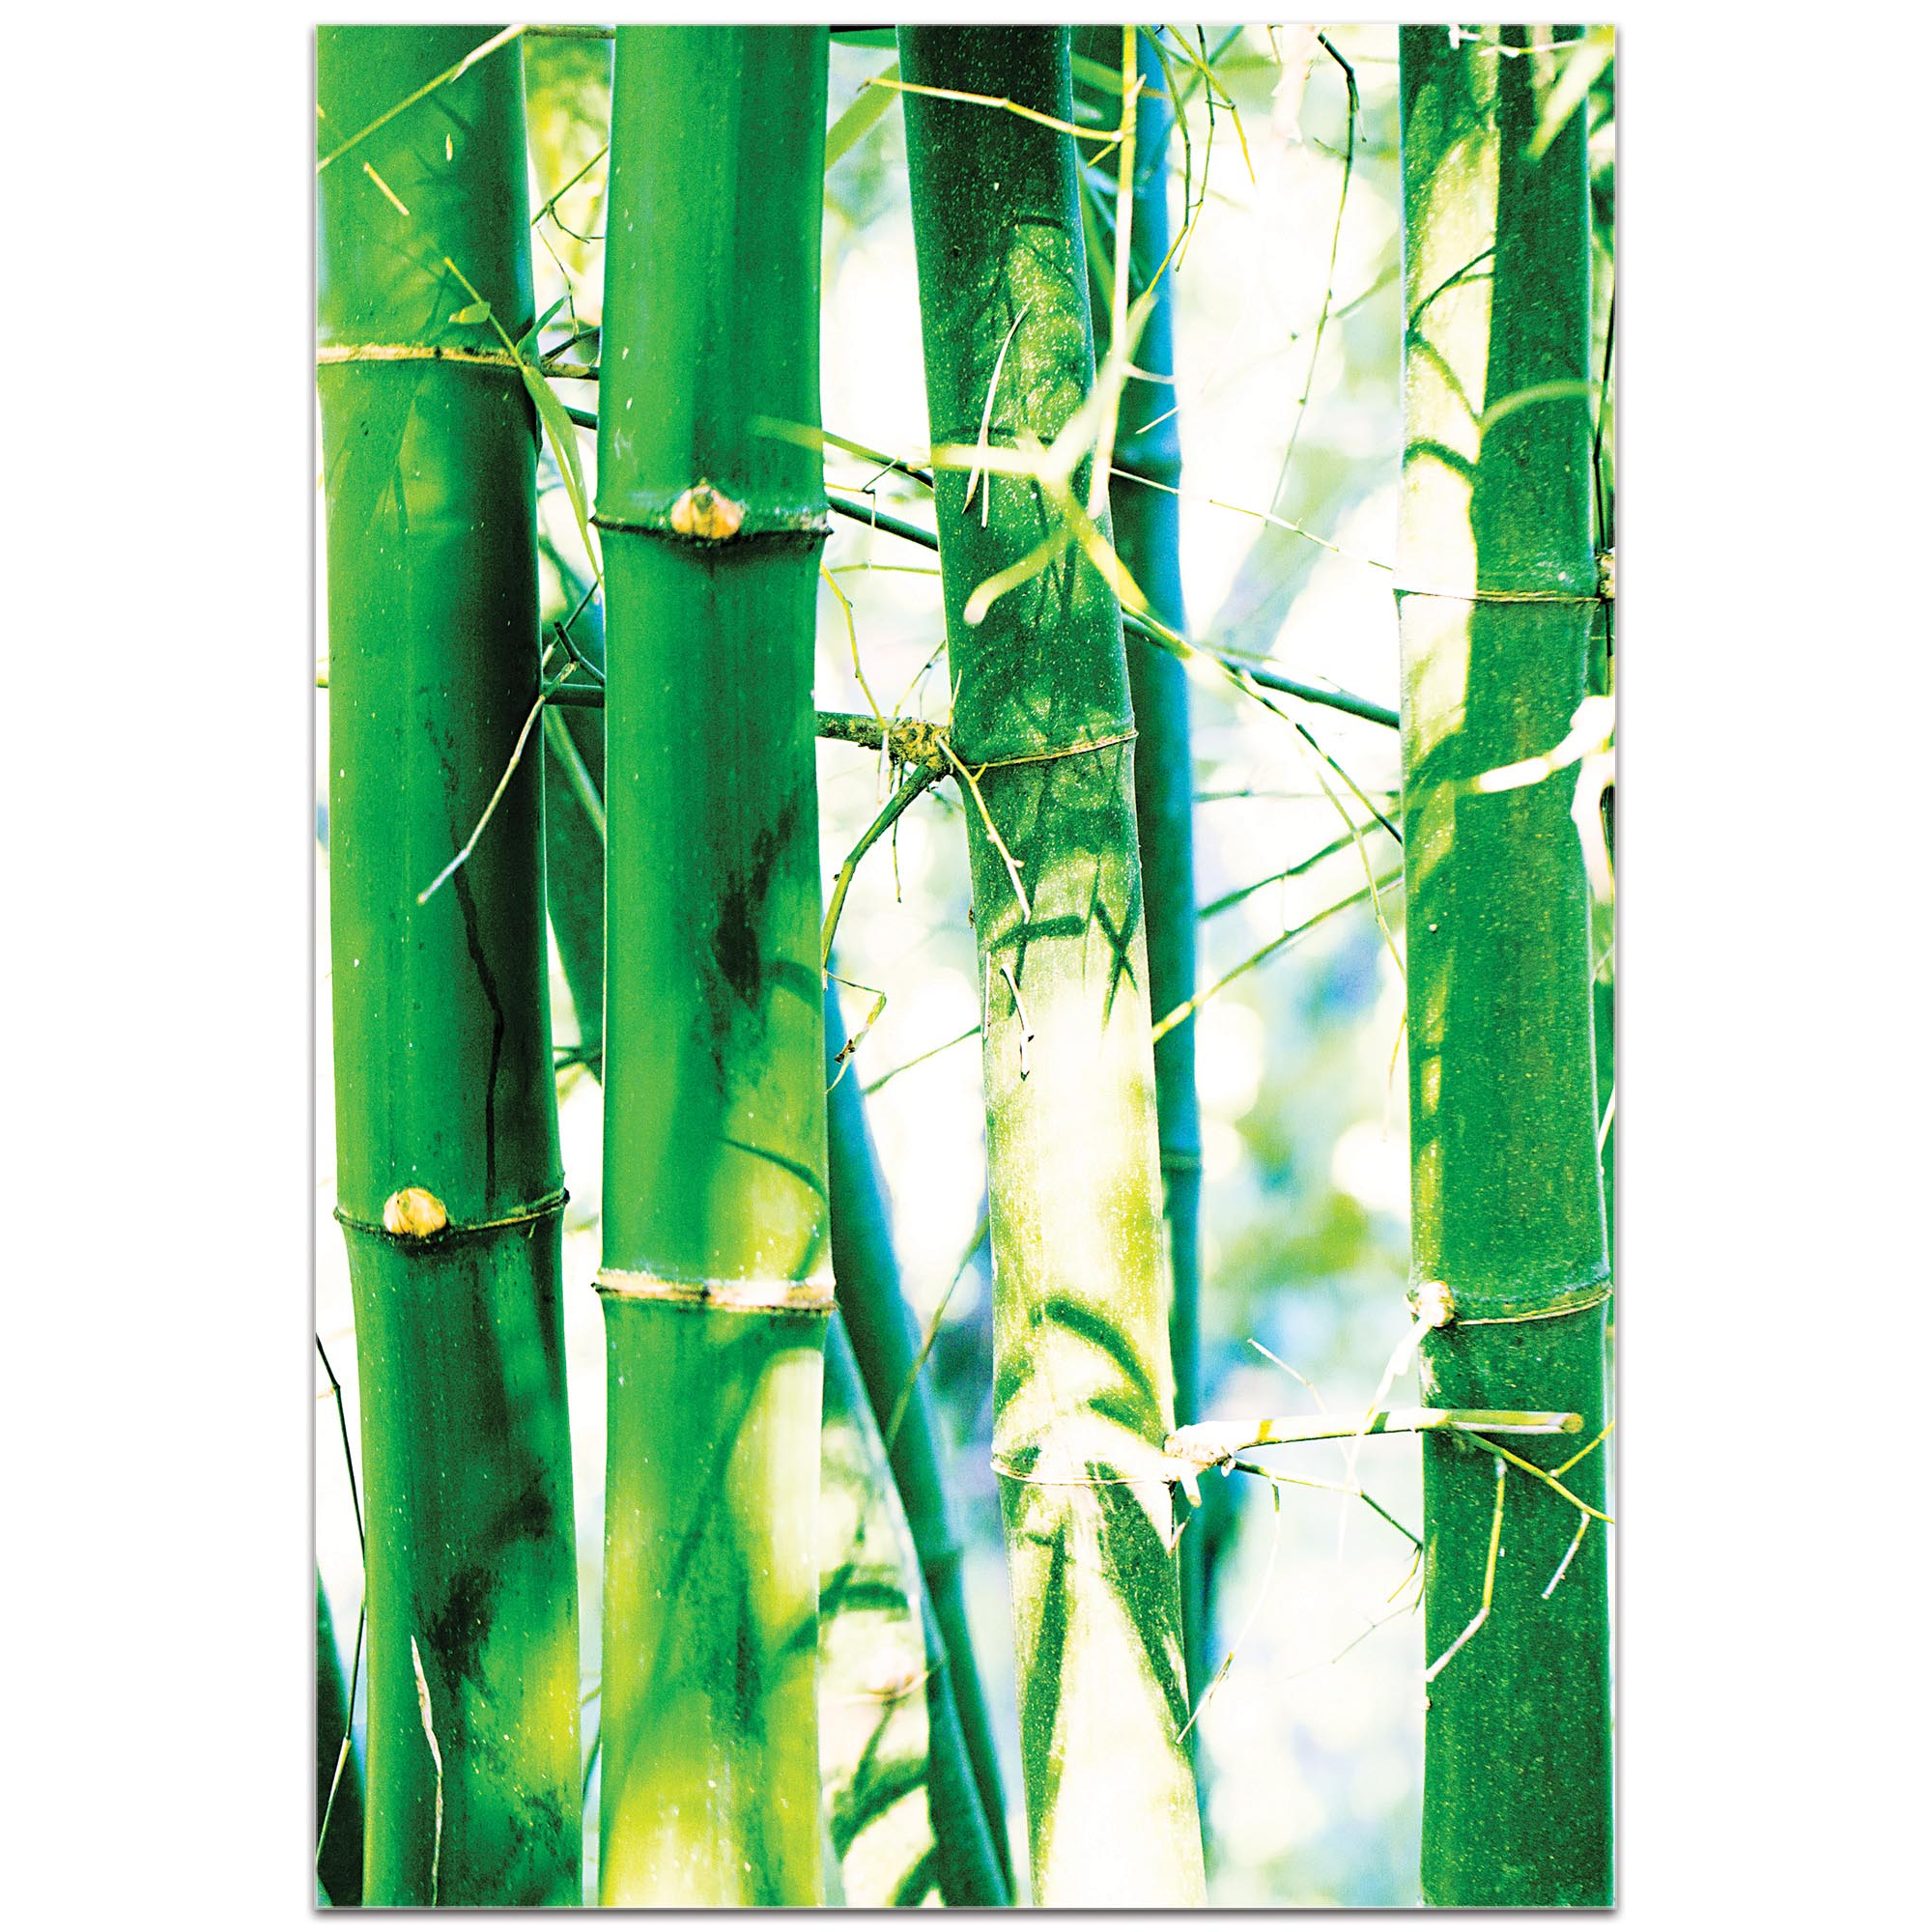 Asian Wall Art 'Bamboo Heights' - Bamboo Decor on Metal or Plexiglass - Image 2